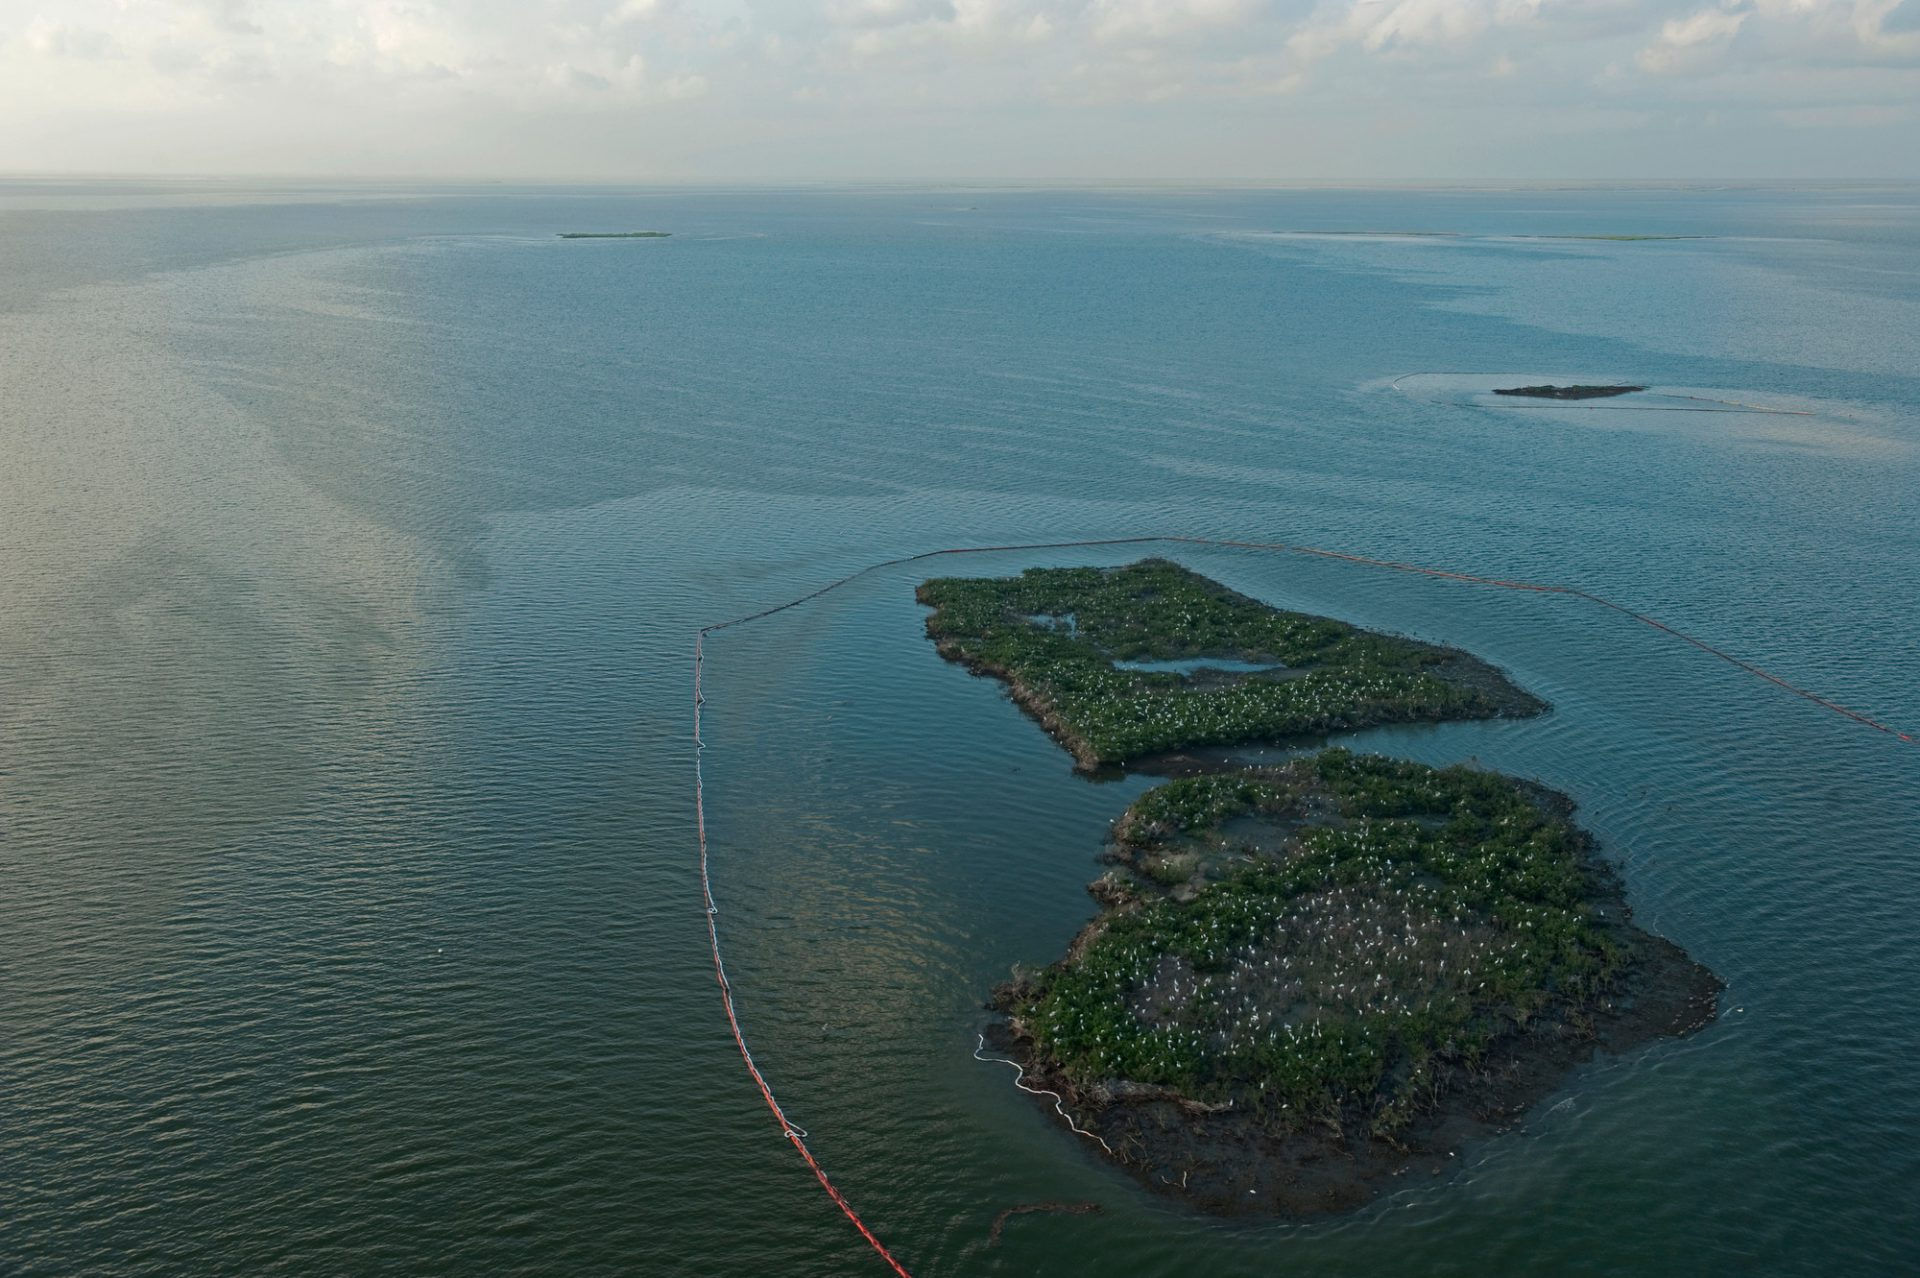 Photo: Oil booms ring Cat island to protect it from the Deepwater Horizon spill.